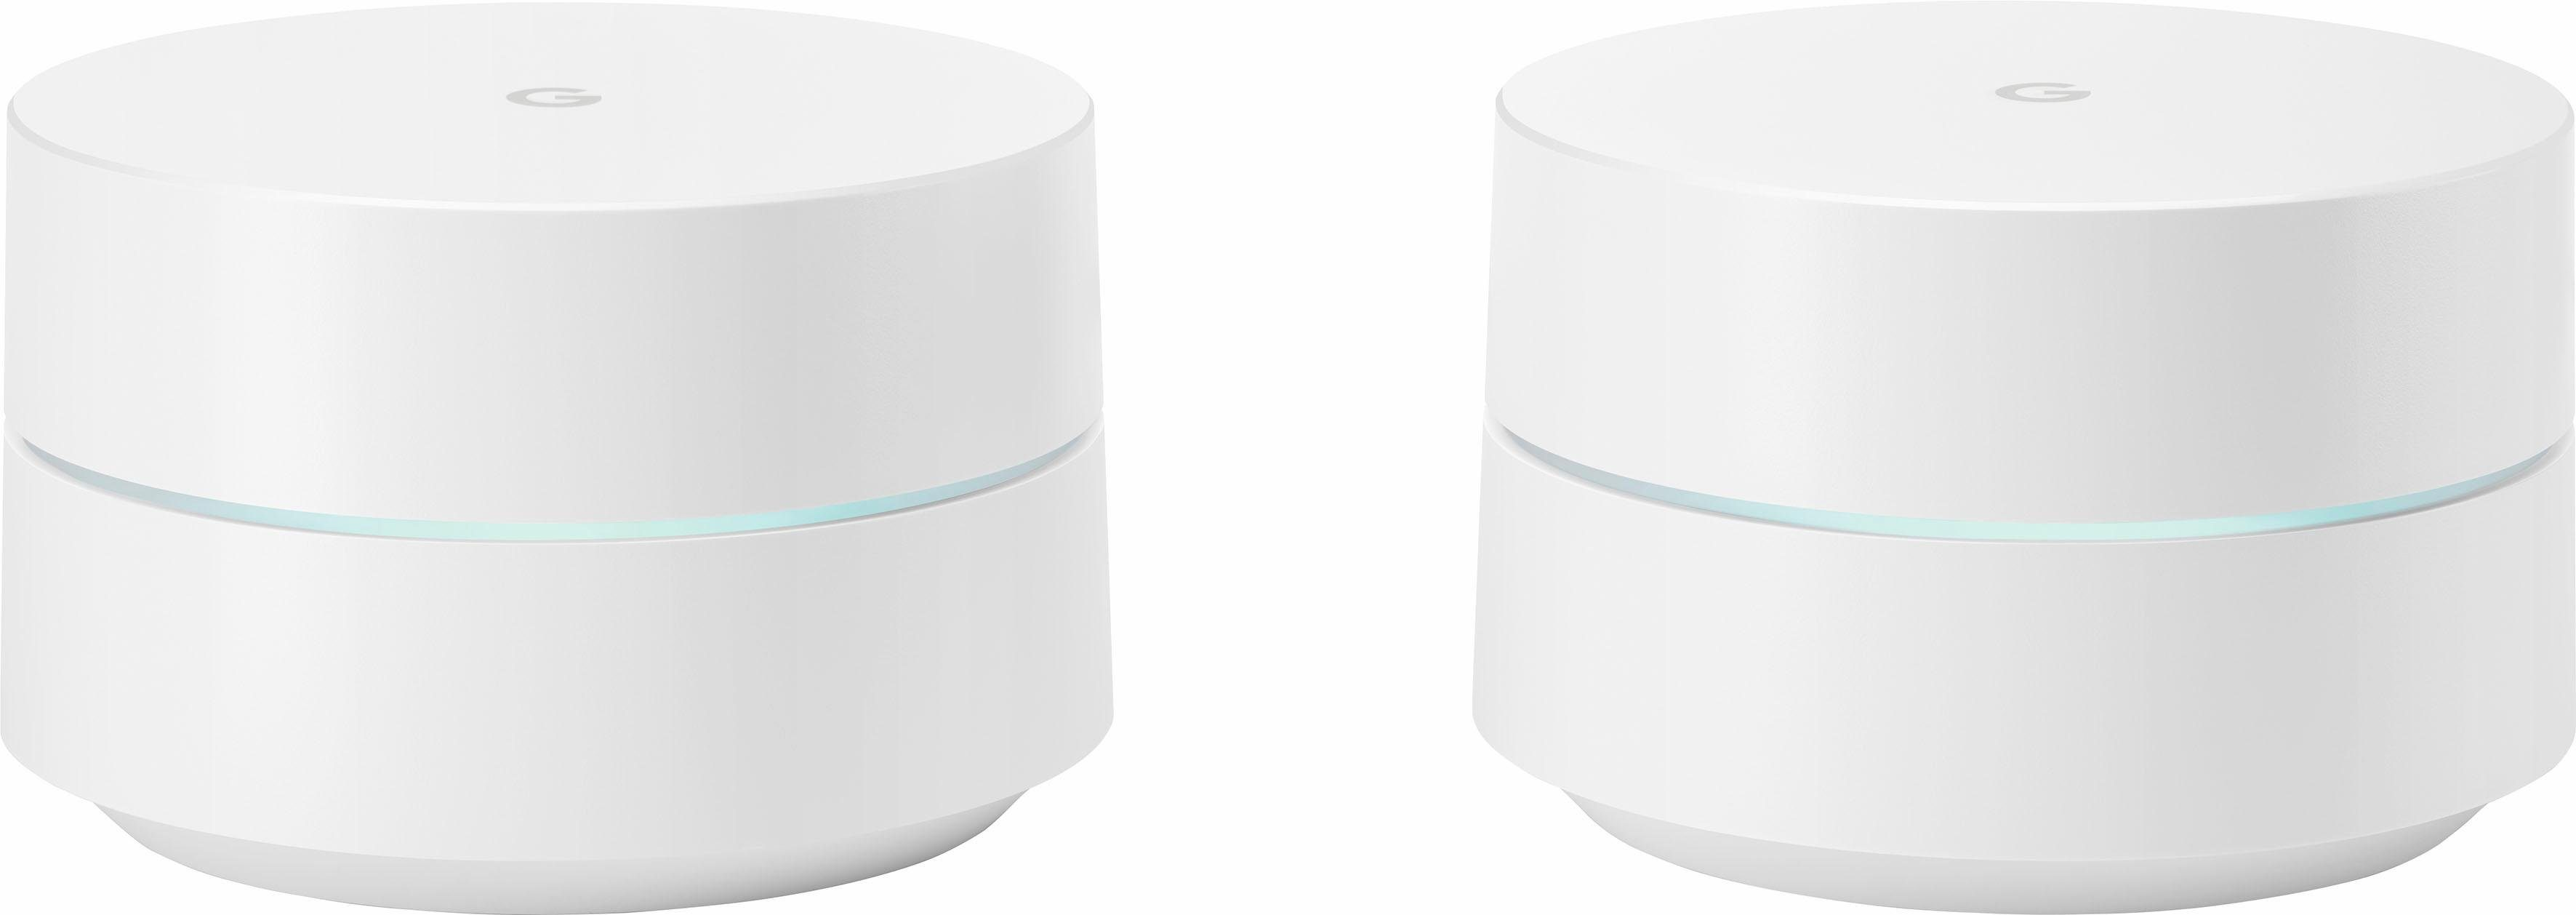 Google Wifi WLAN-Router (Doppelpack)